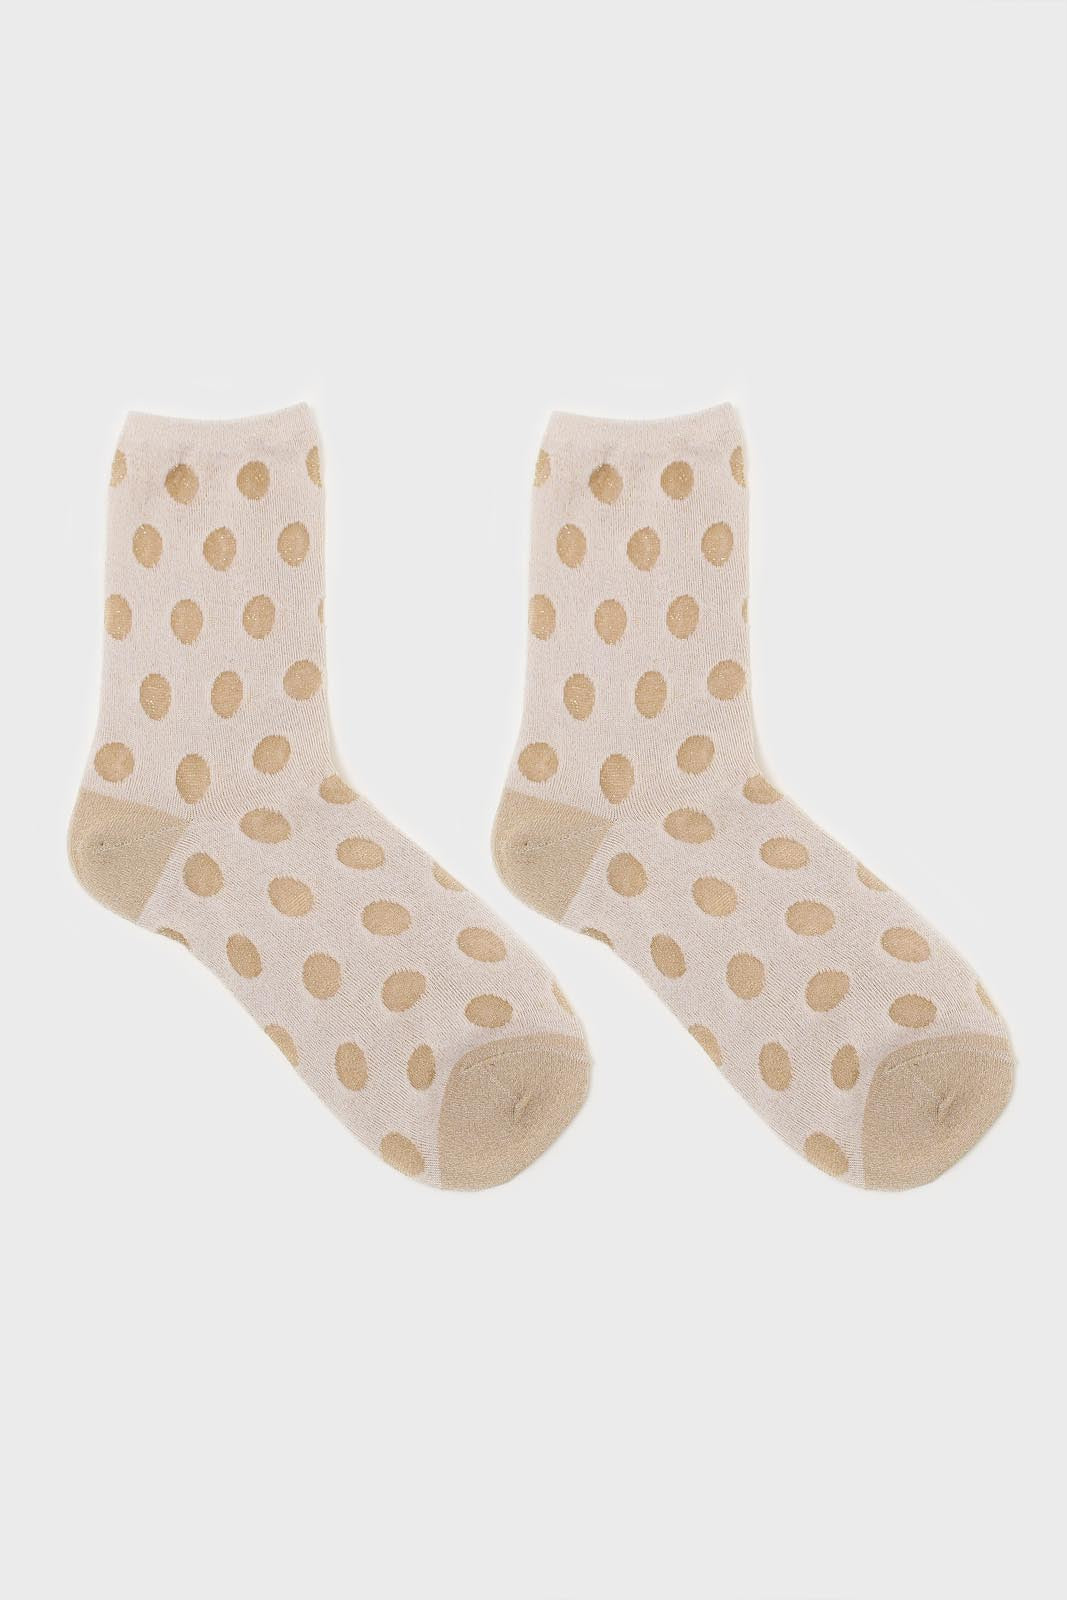 Gold metallic polka dots socks2